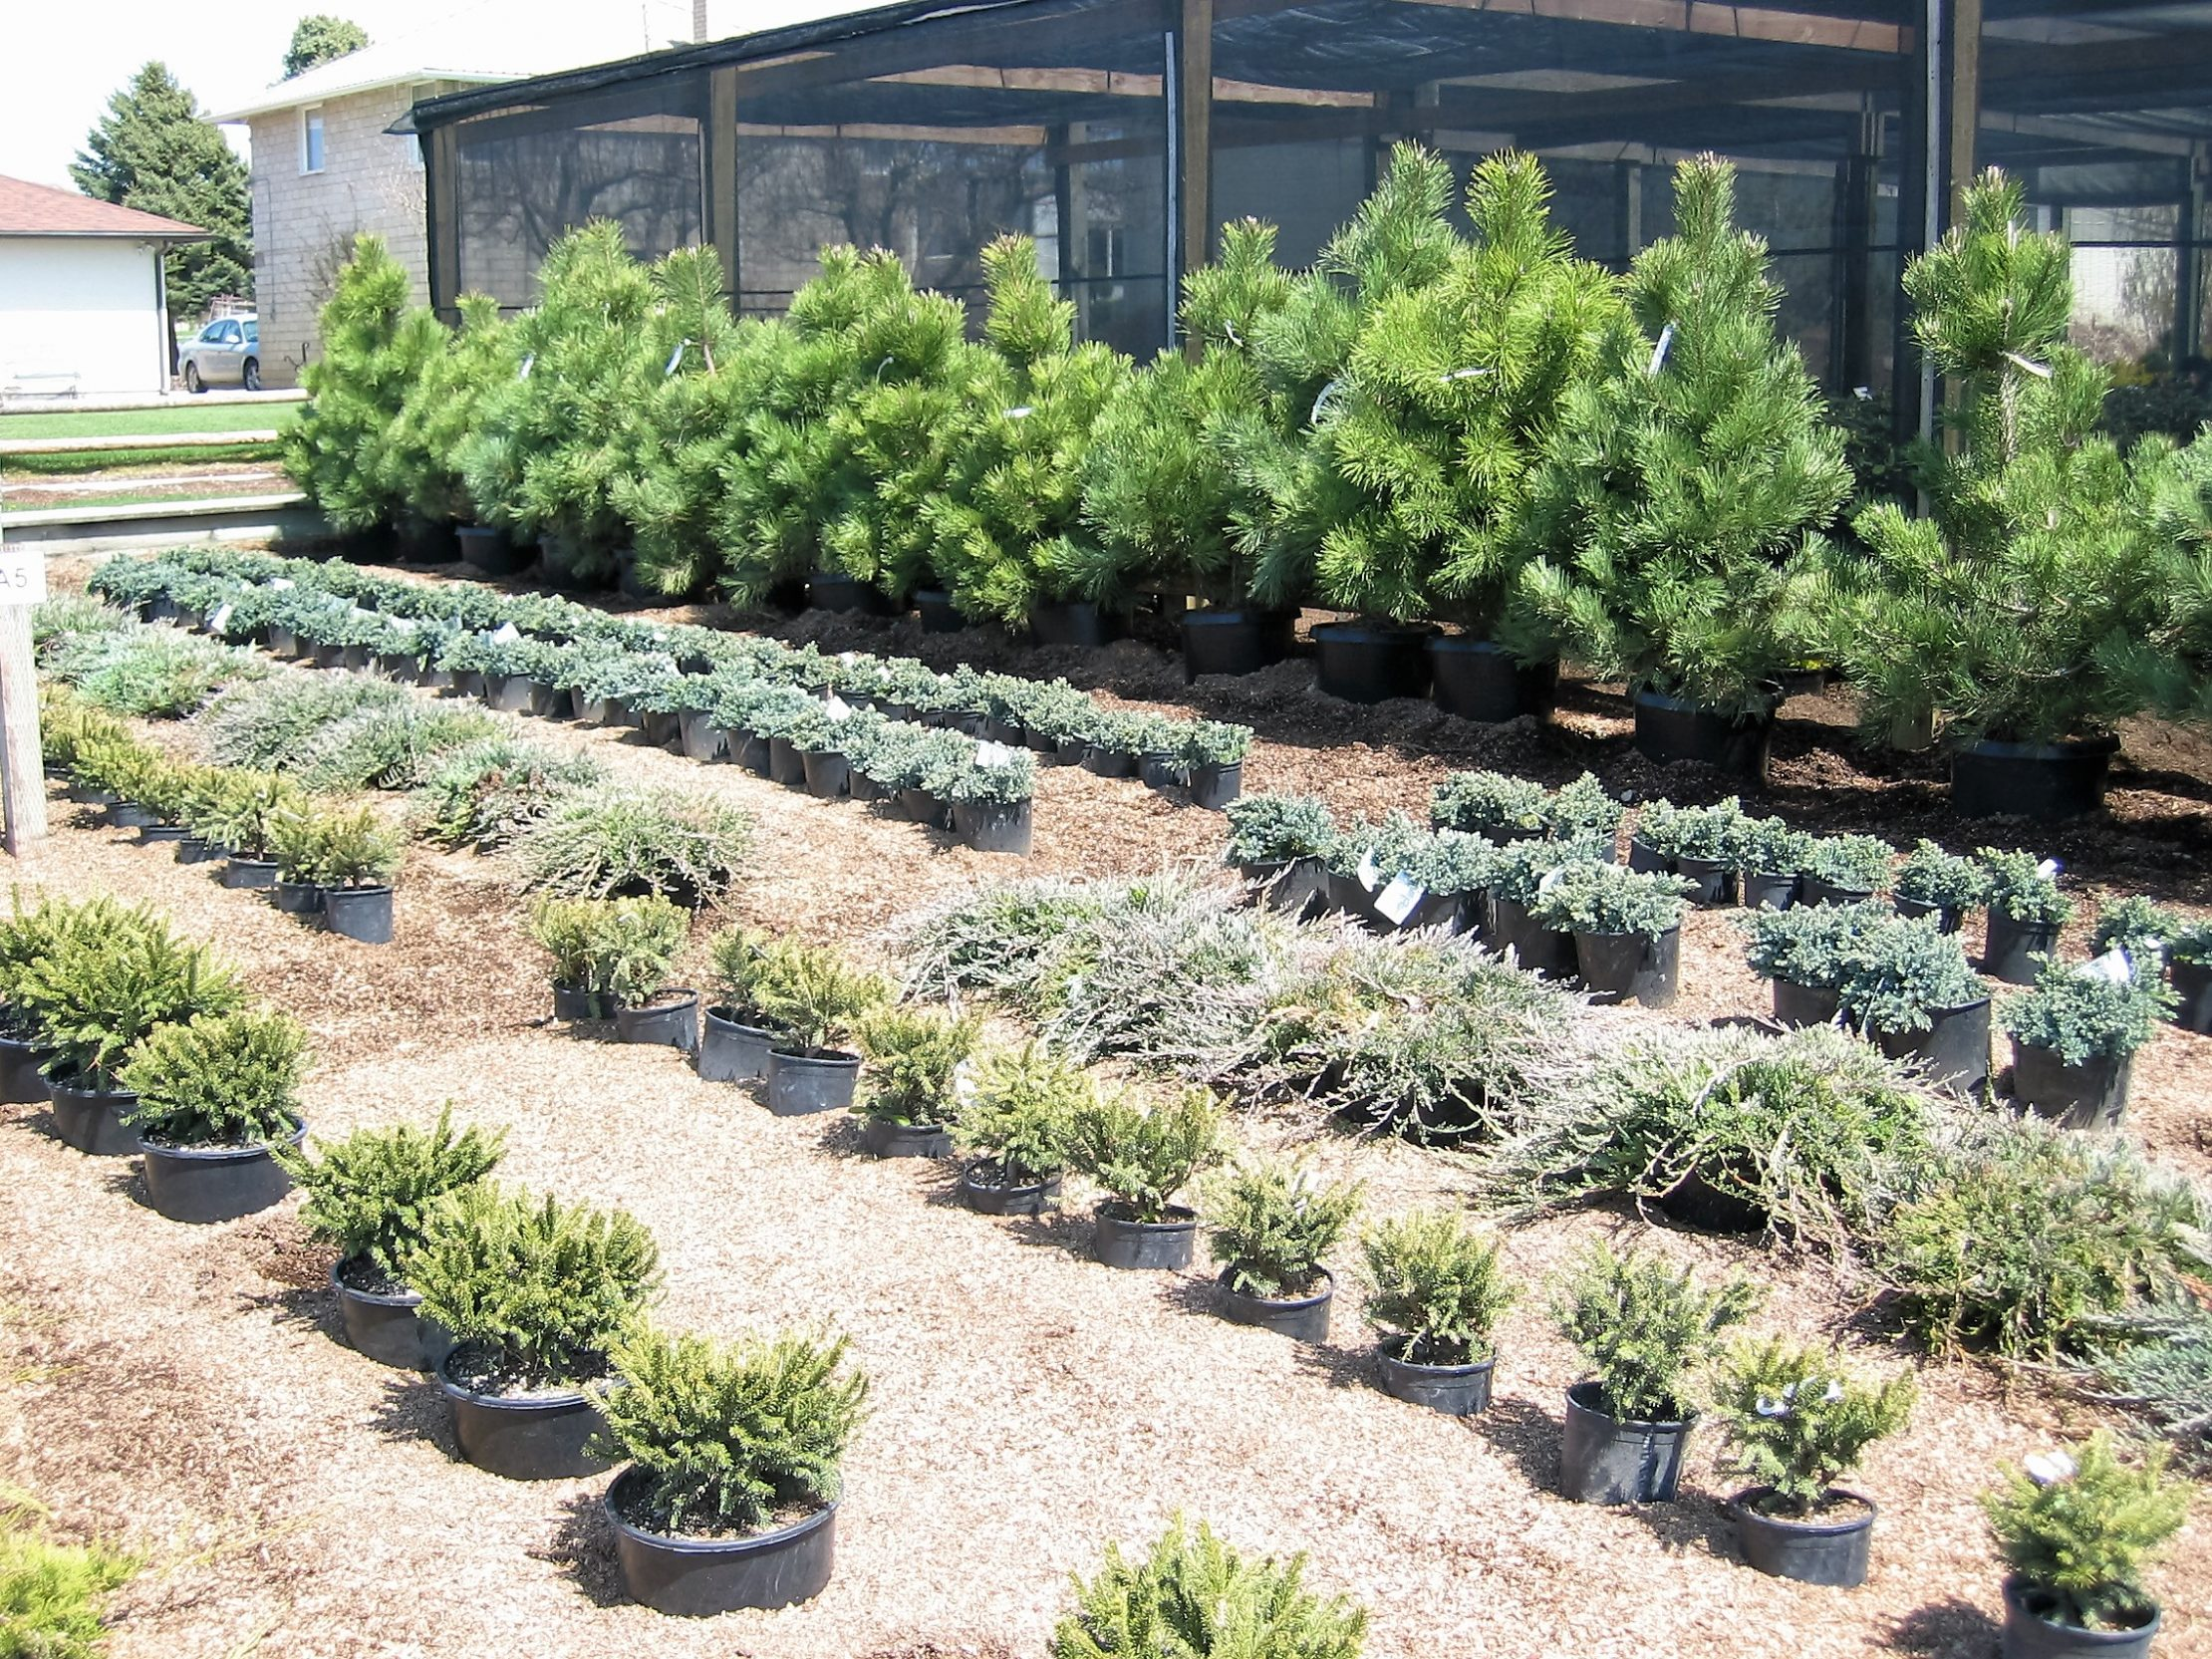 Trees And Shrubs Planting Trees Shrubs Mcpheeters Turf Inc Mcpheeters Turf Inc